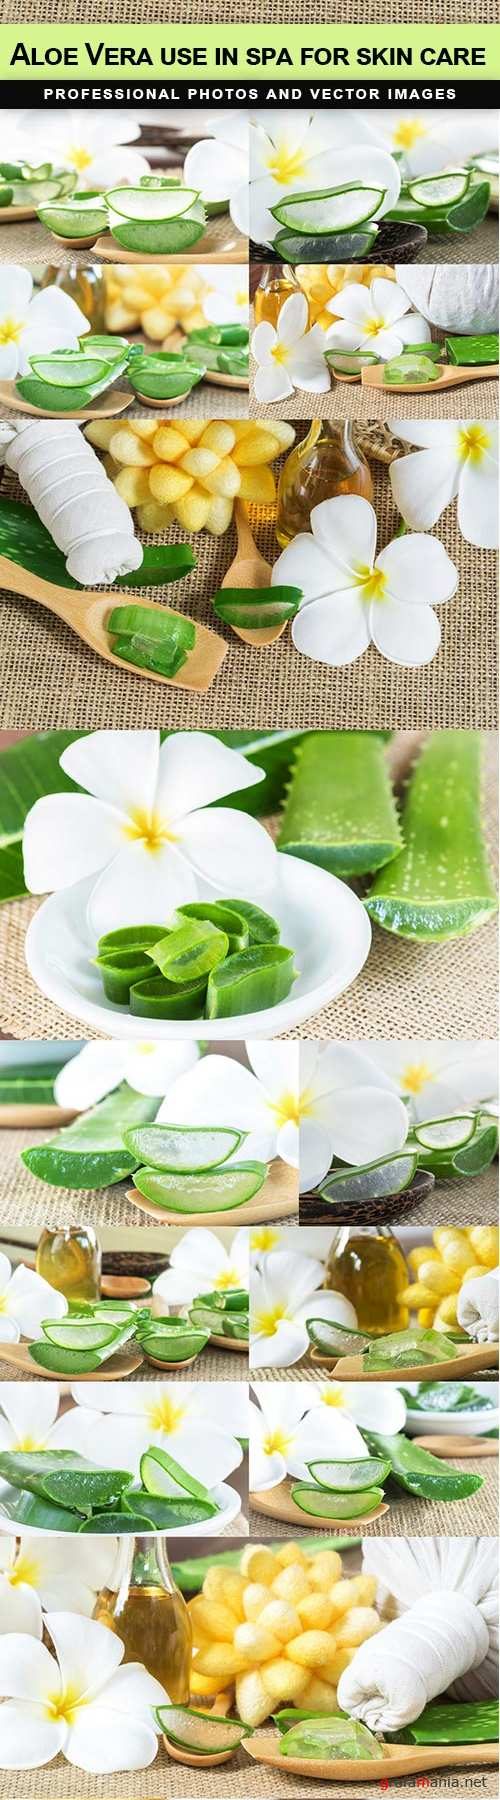 Aloe Vera use in spa for skin care - 14 UHQ JPEG